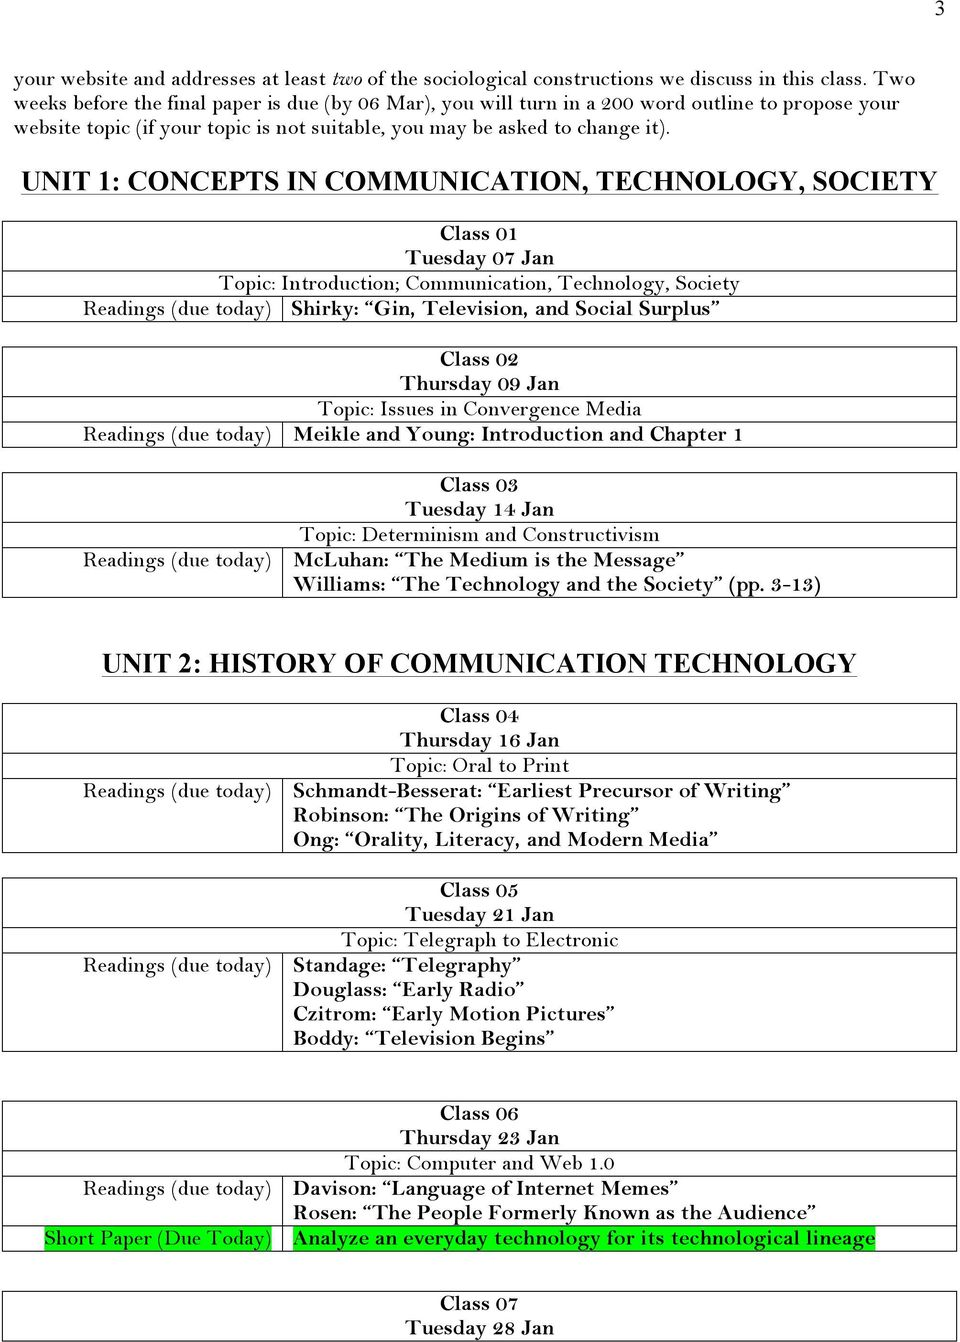 UNIT 1: CONCEPTS IN COMMUNICATION, TECHNOLOGY, SOCIETY Class 01 Tuesday 07 Jan Topic: Introduction; Communication, Technology, Society Readings (due today) Shirky: Gin, Television, and Social Surplus